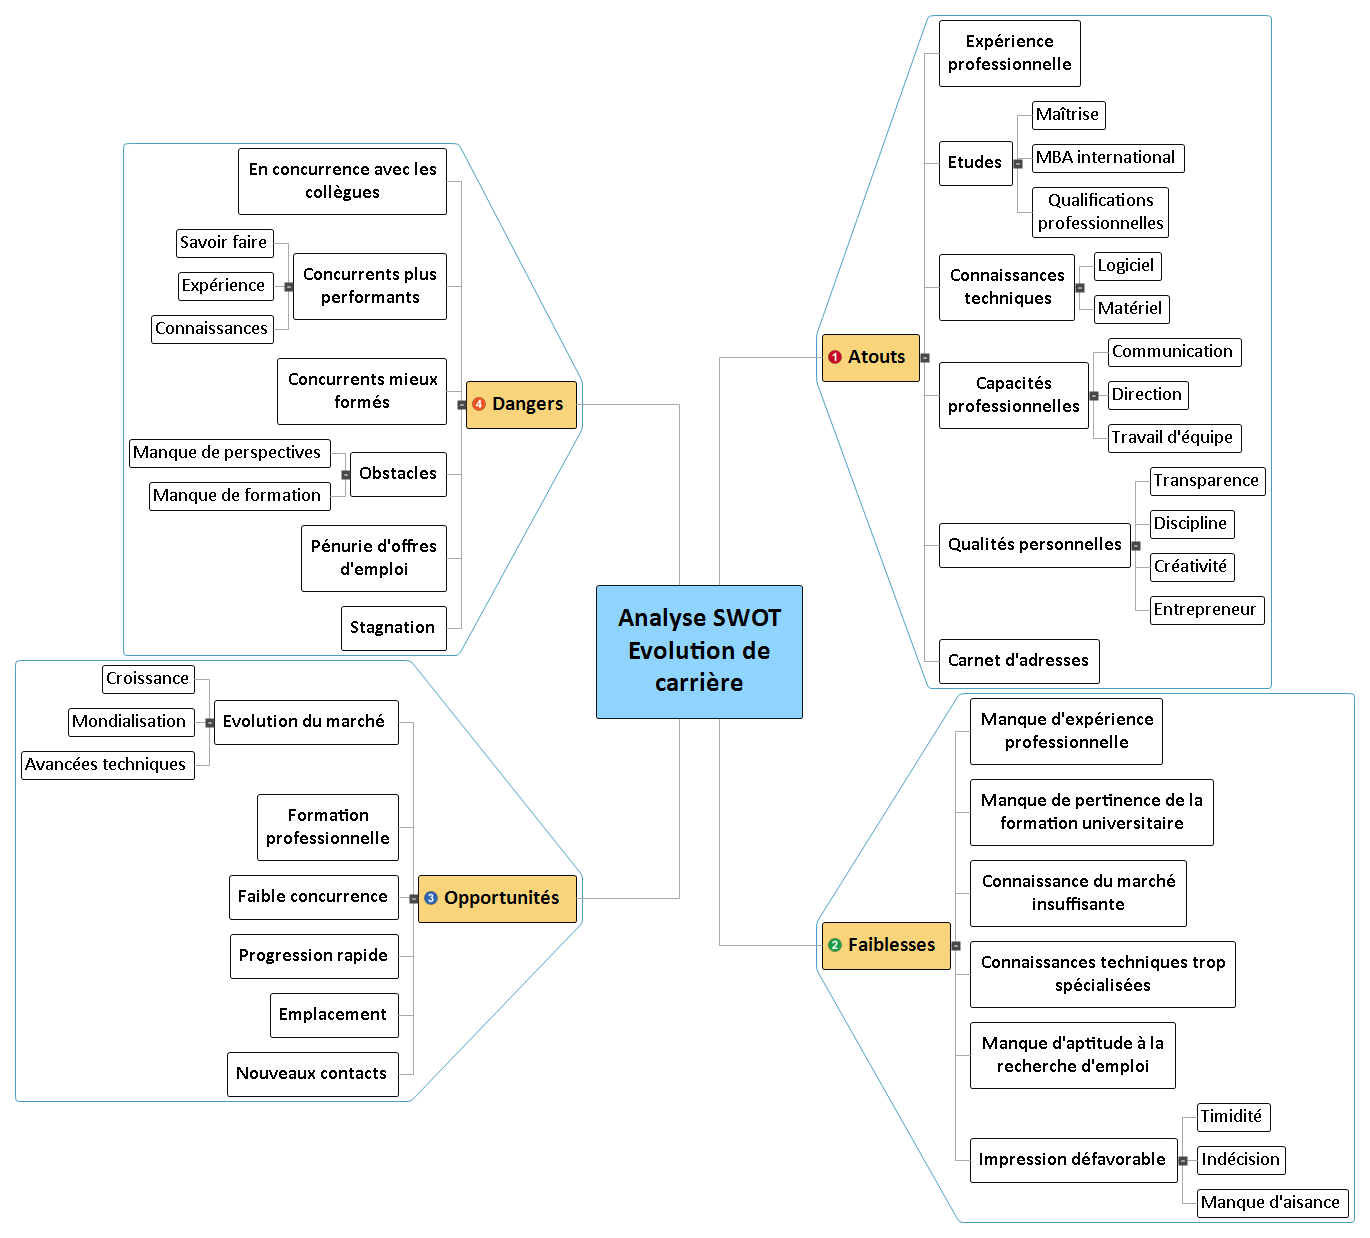 Analyse SWOT Evolution de carrière Mind Maps